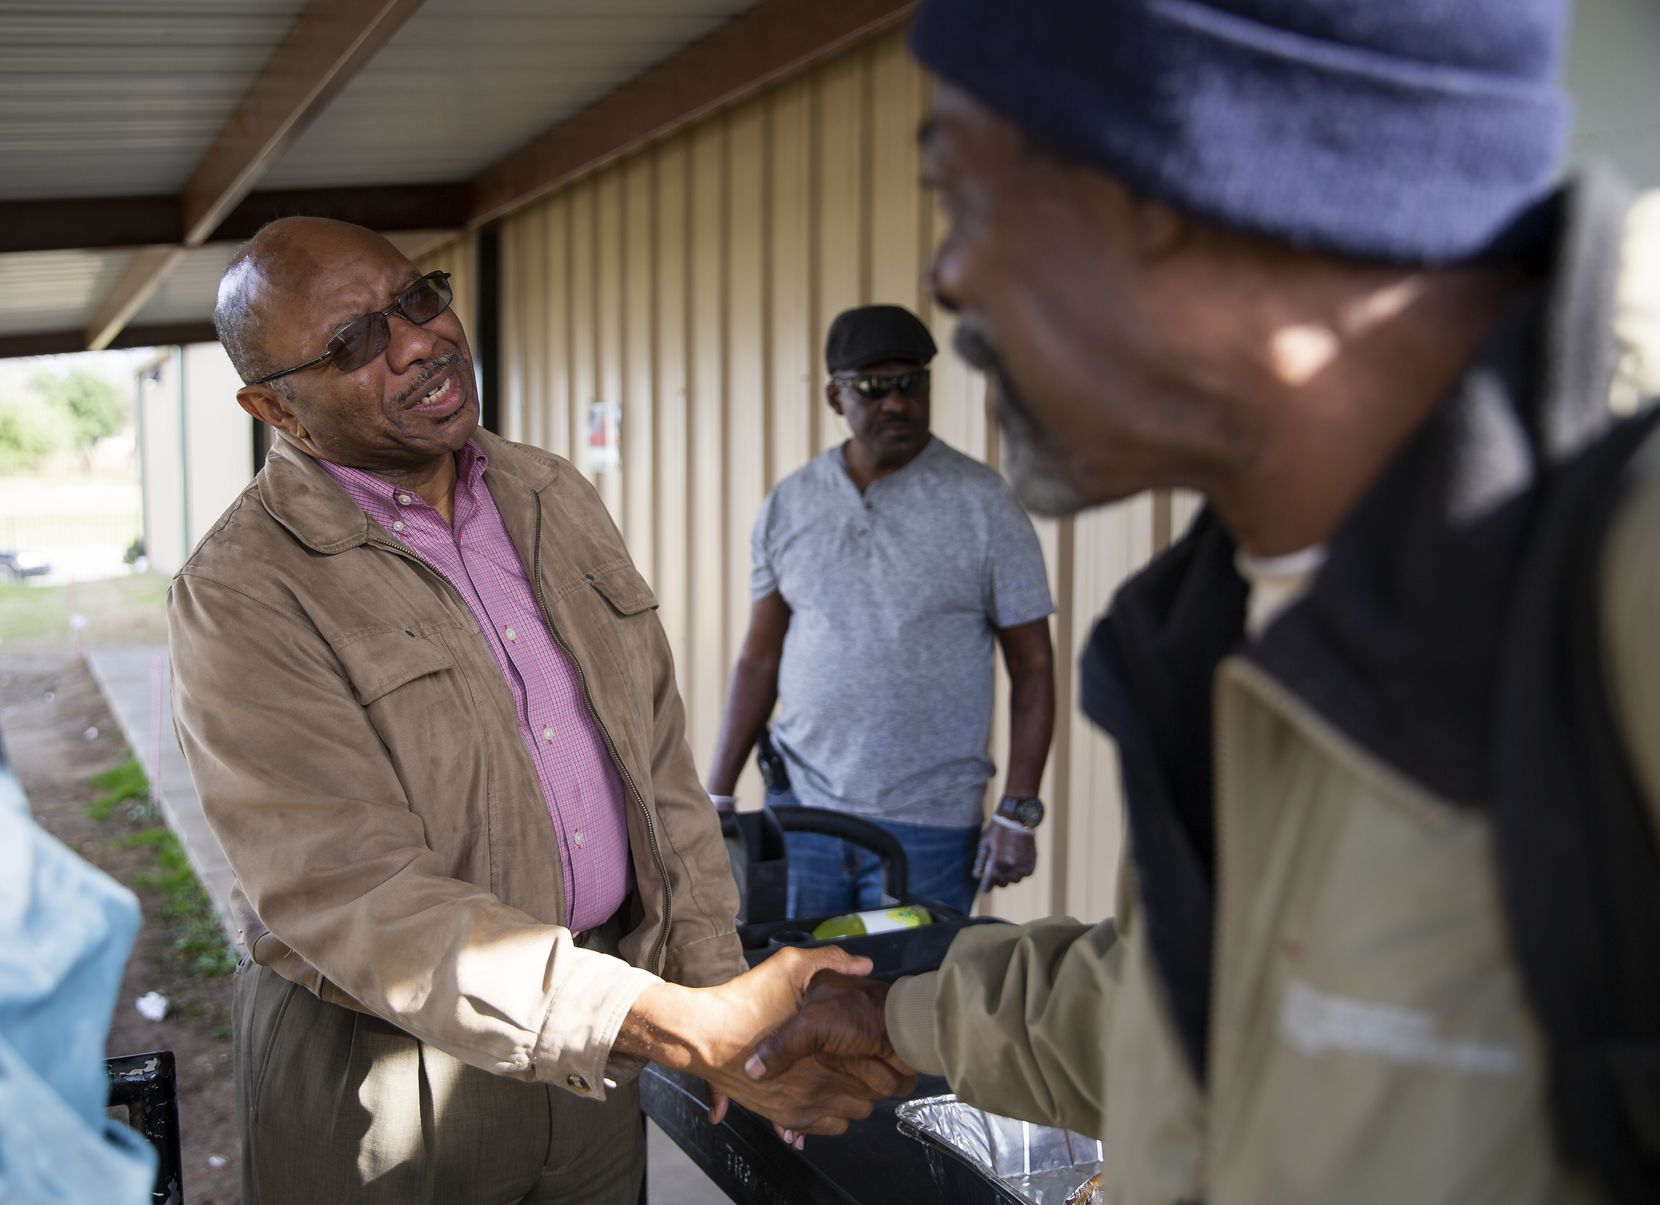 Pastor Chris Simmons (left) of Cornerstone Baptist Church in Dallas greets people as they leave the church's community kitchen.